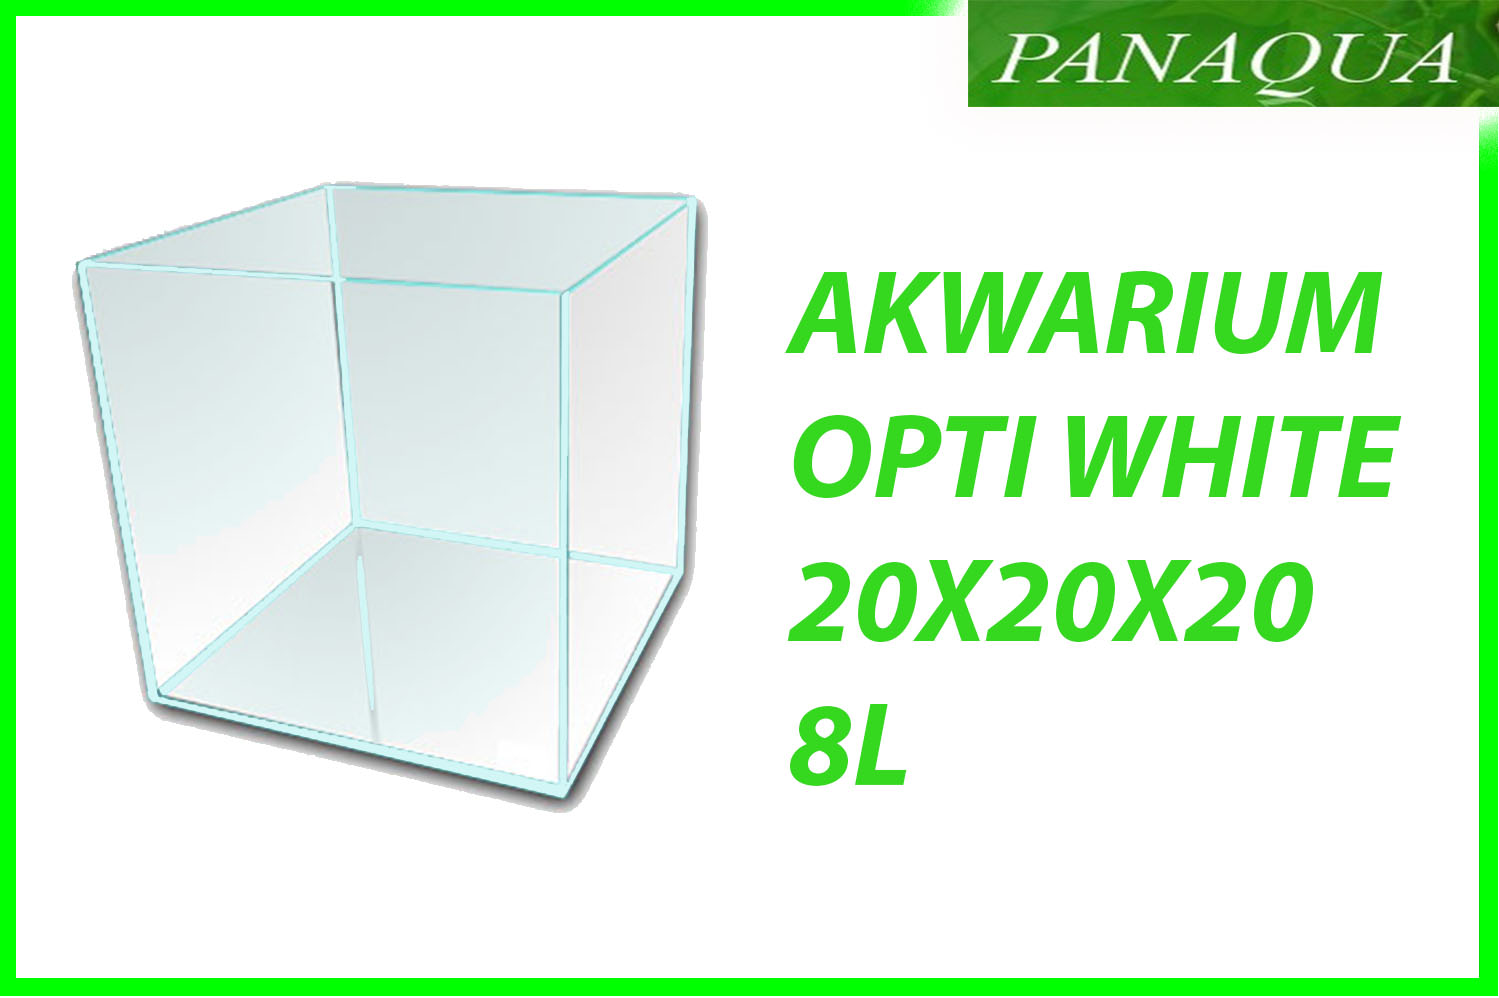 optiwith20X20X20.jpg